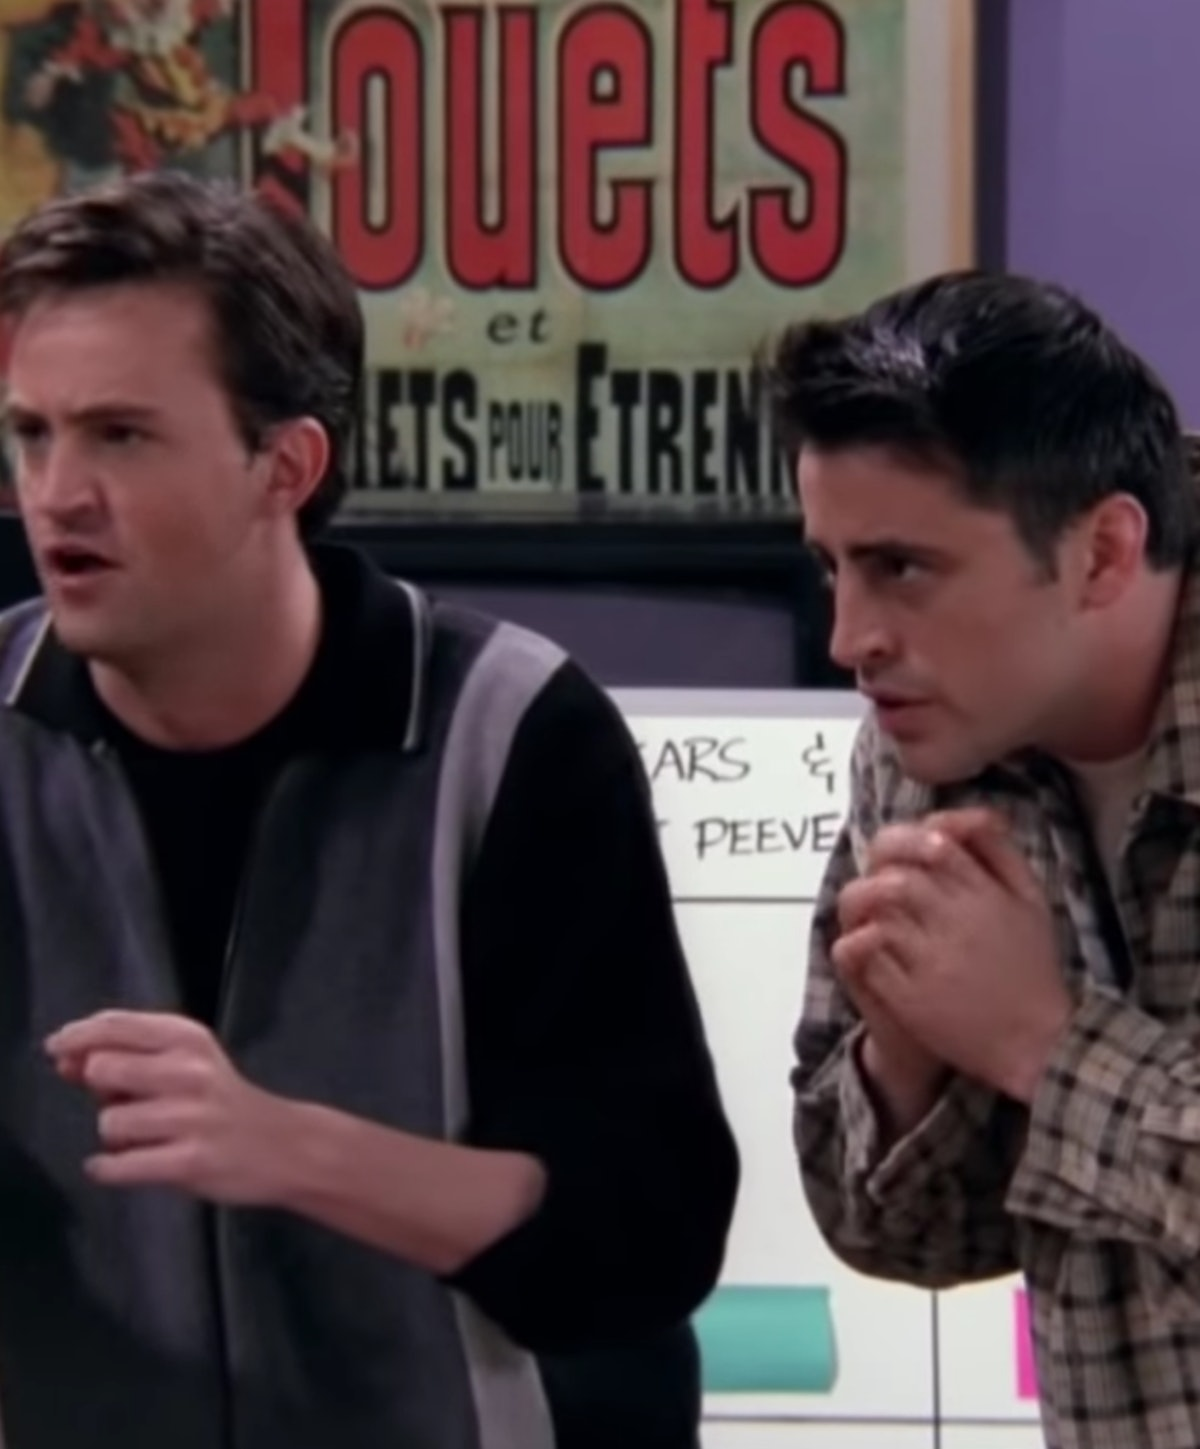 If you want to save money on date night, stay in and play trivia, like this episode of Friends.